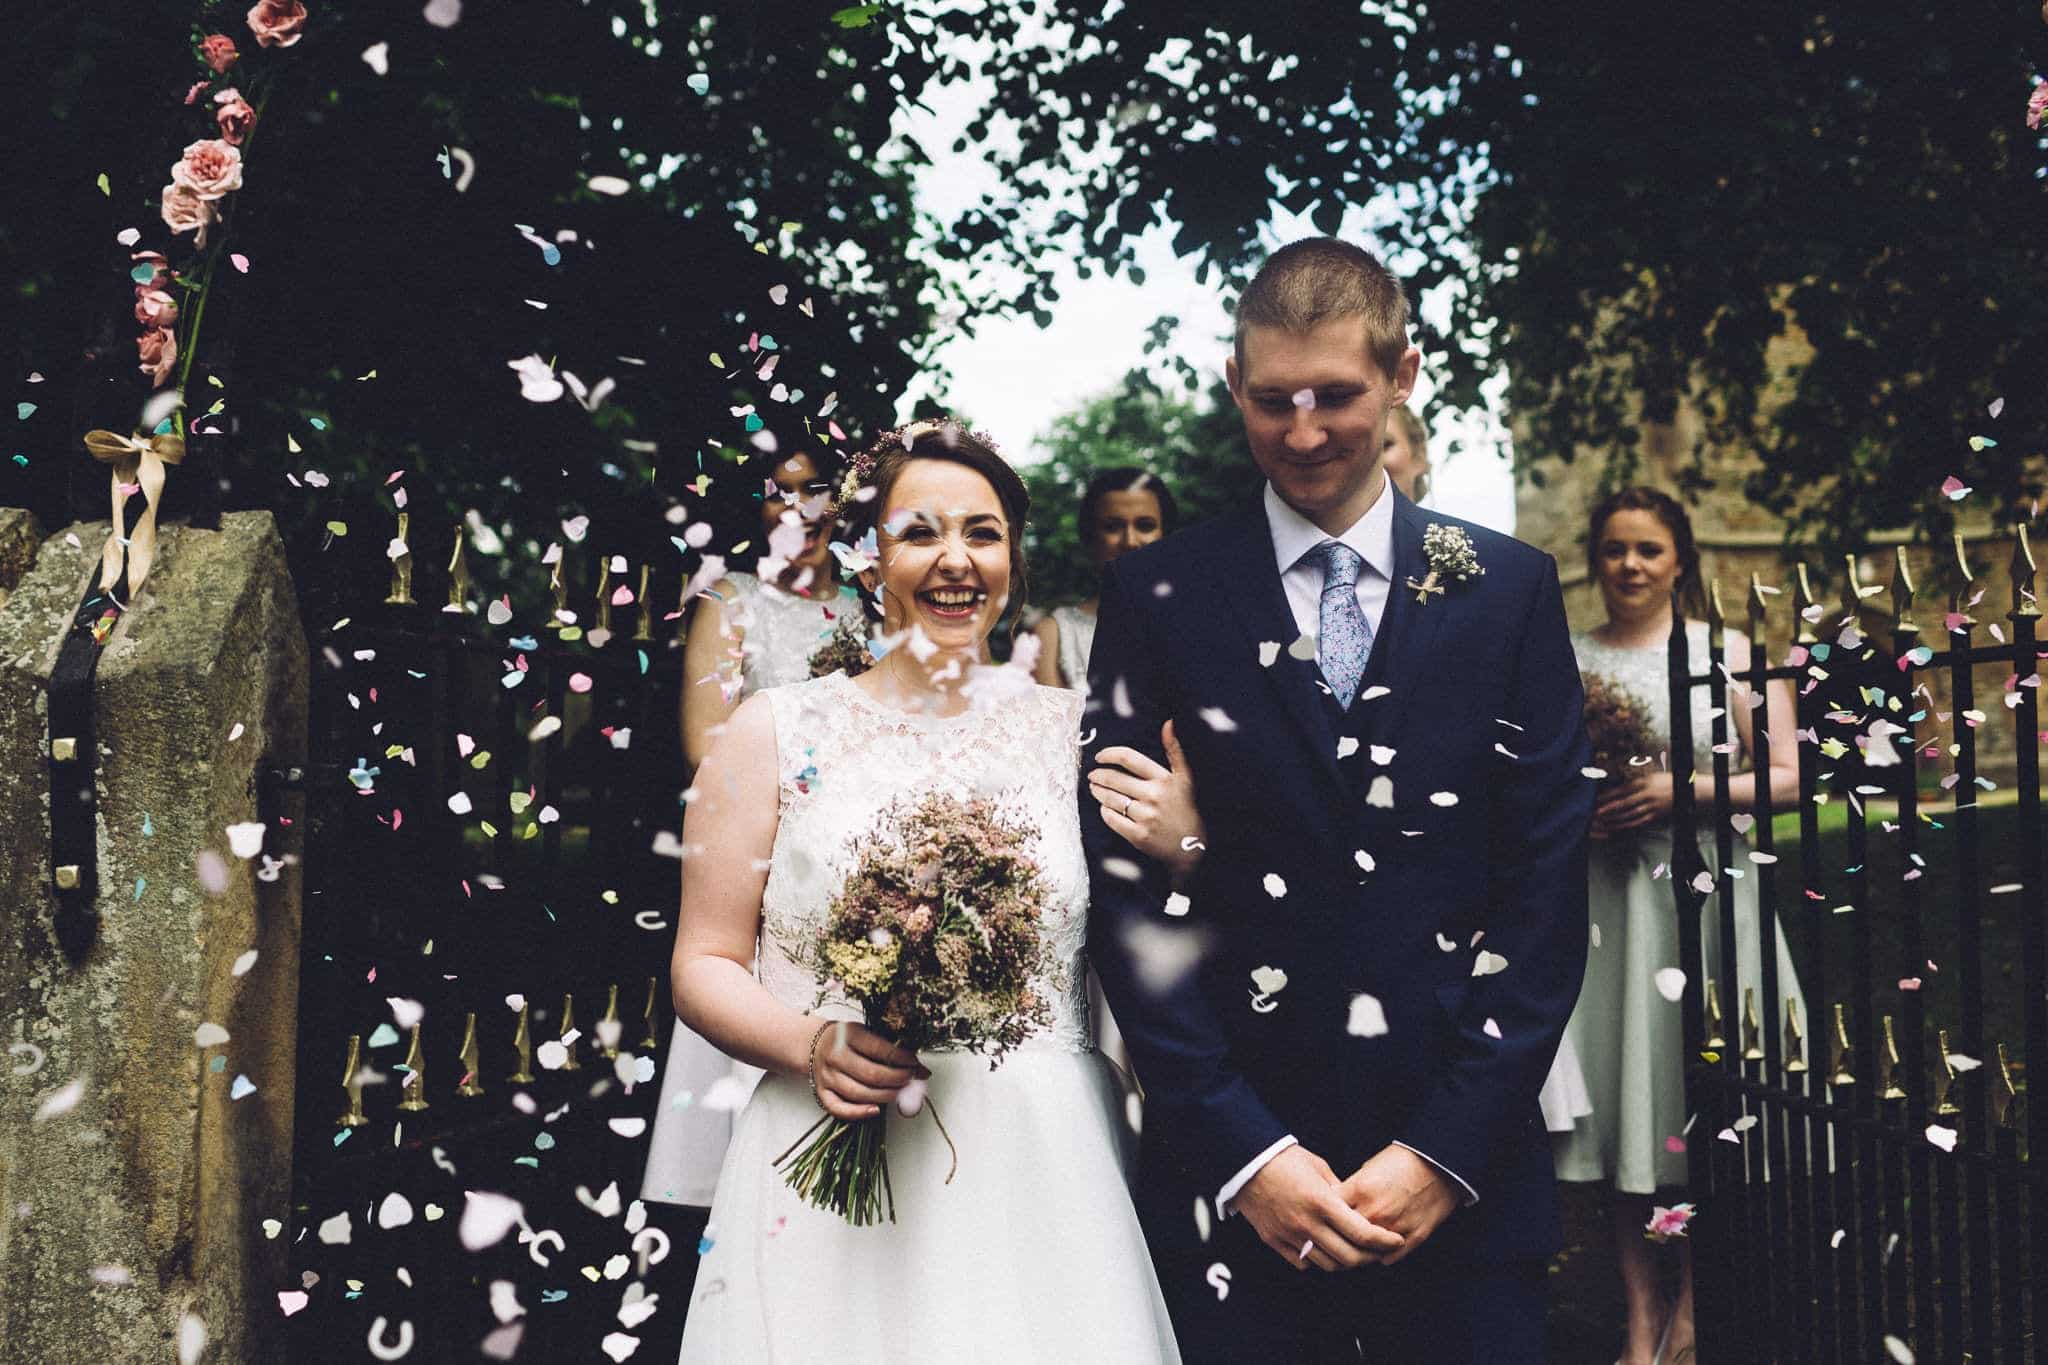 Bishopton Village wedding